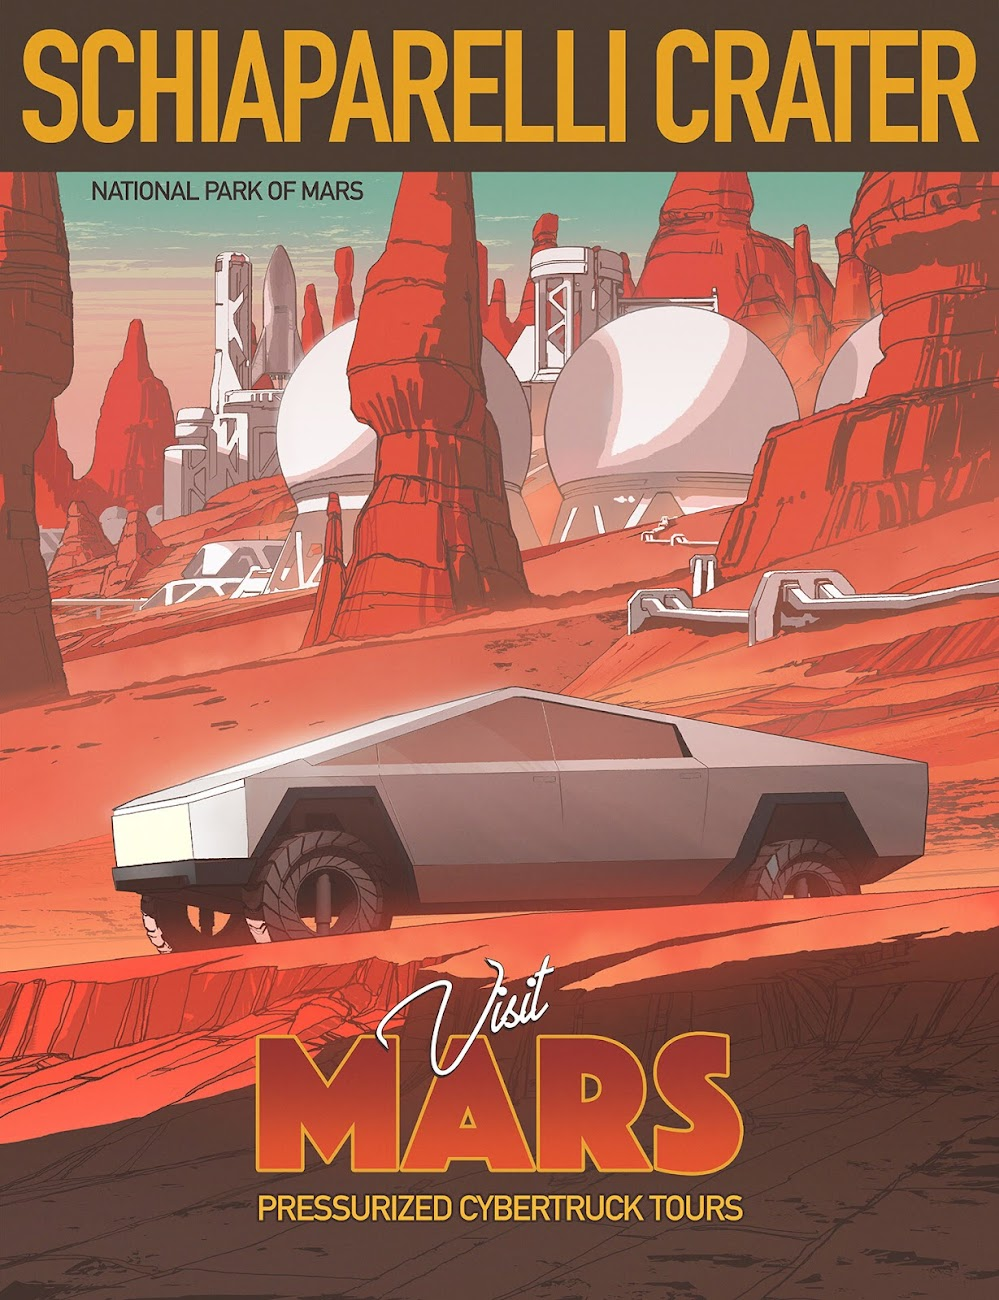 Poster of Tesla Cybertruck at Schiaparelli Crater on Mars by Darren Bacon